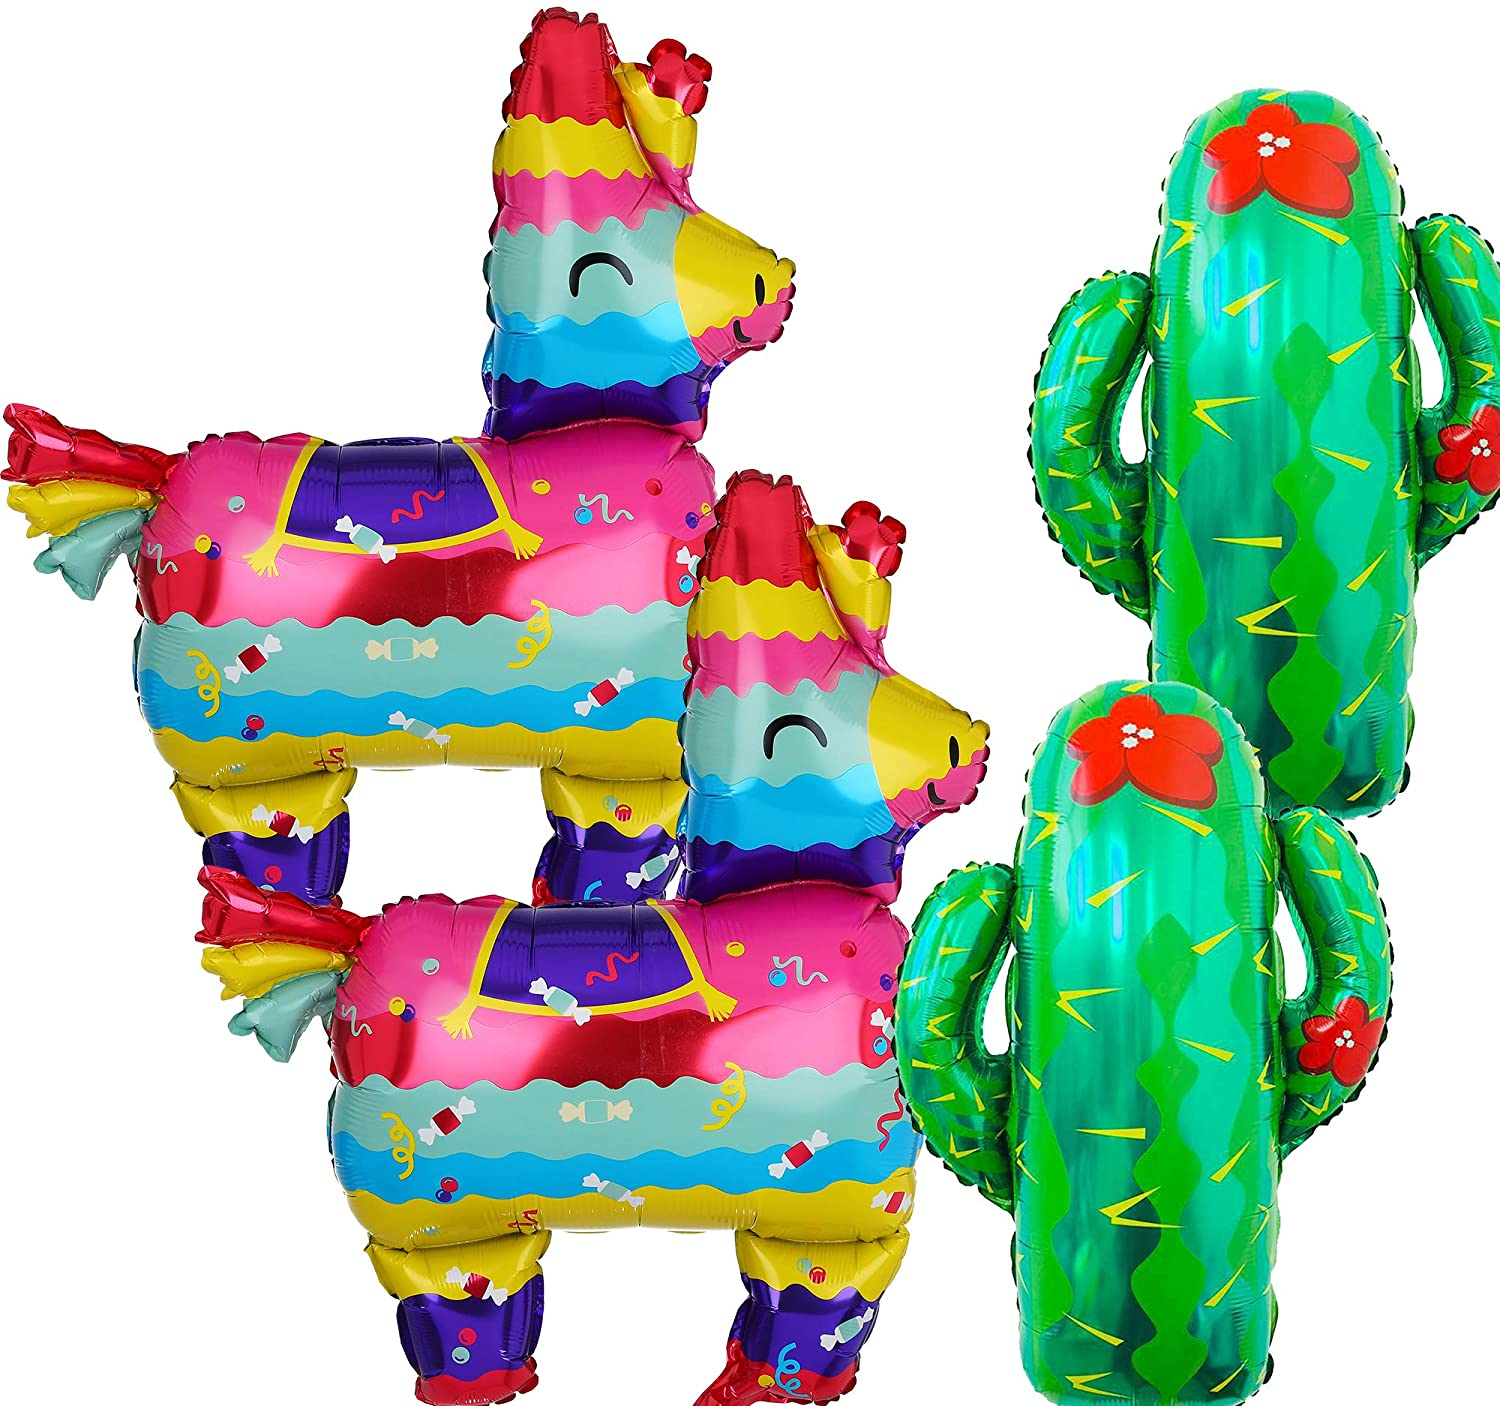 donkey balloon  Mexican 40 inches